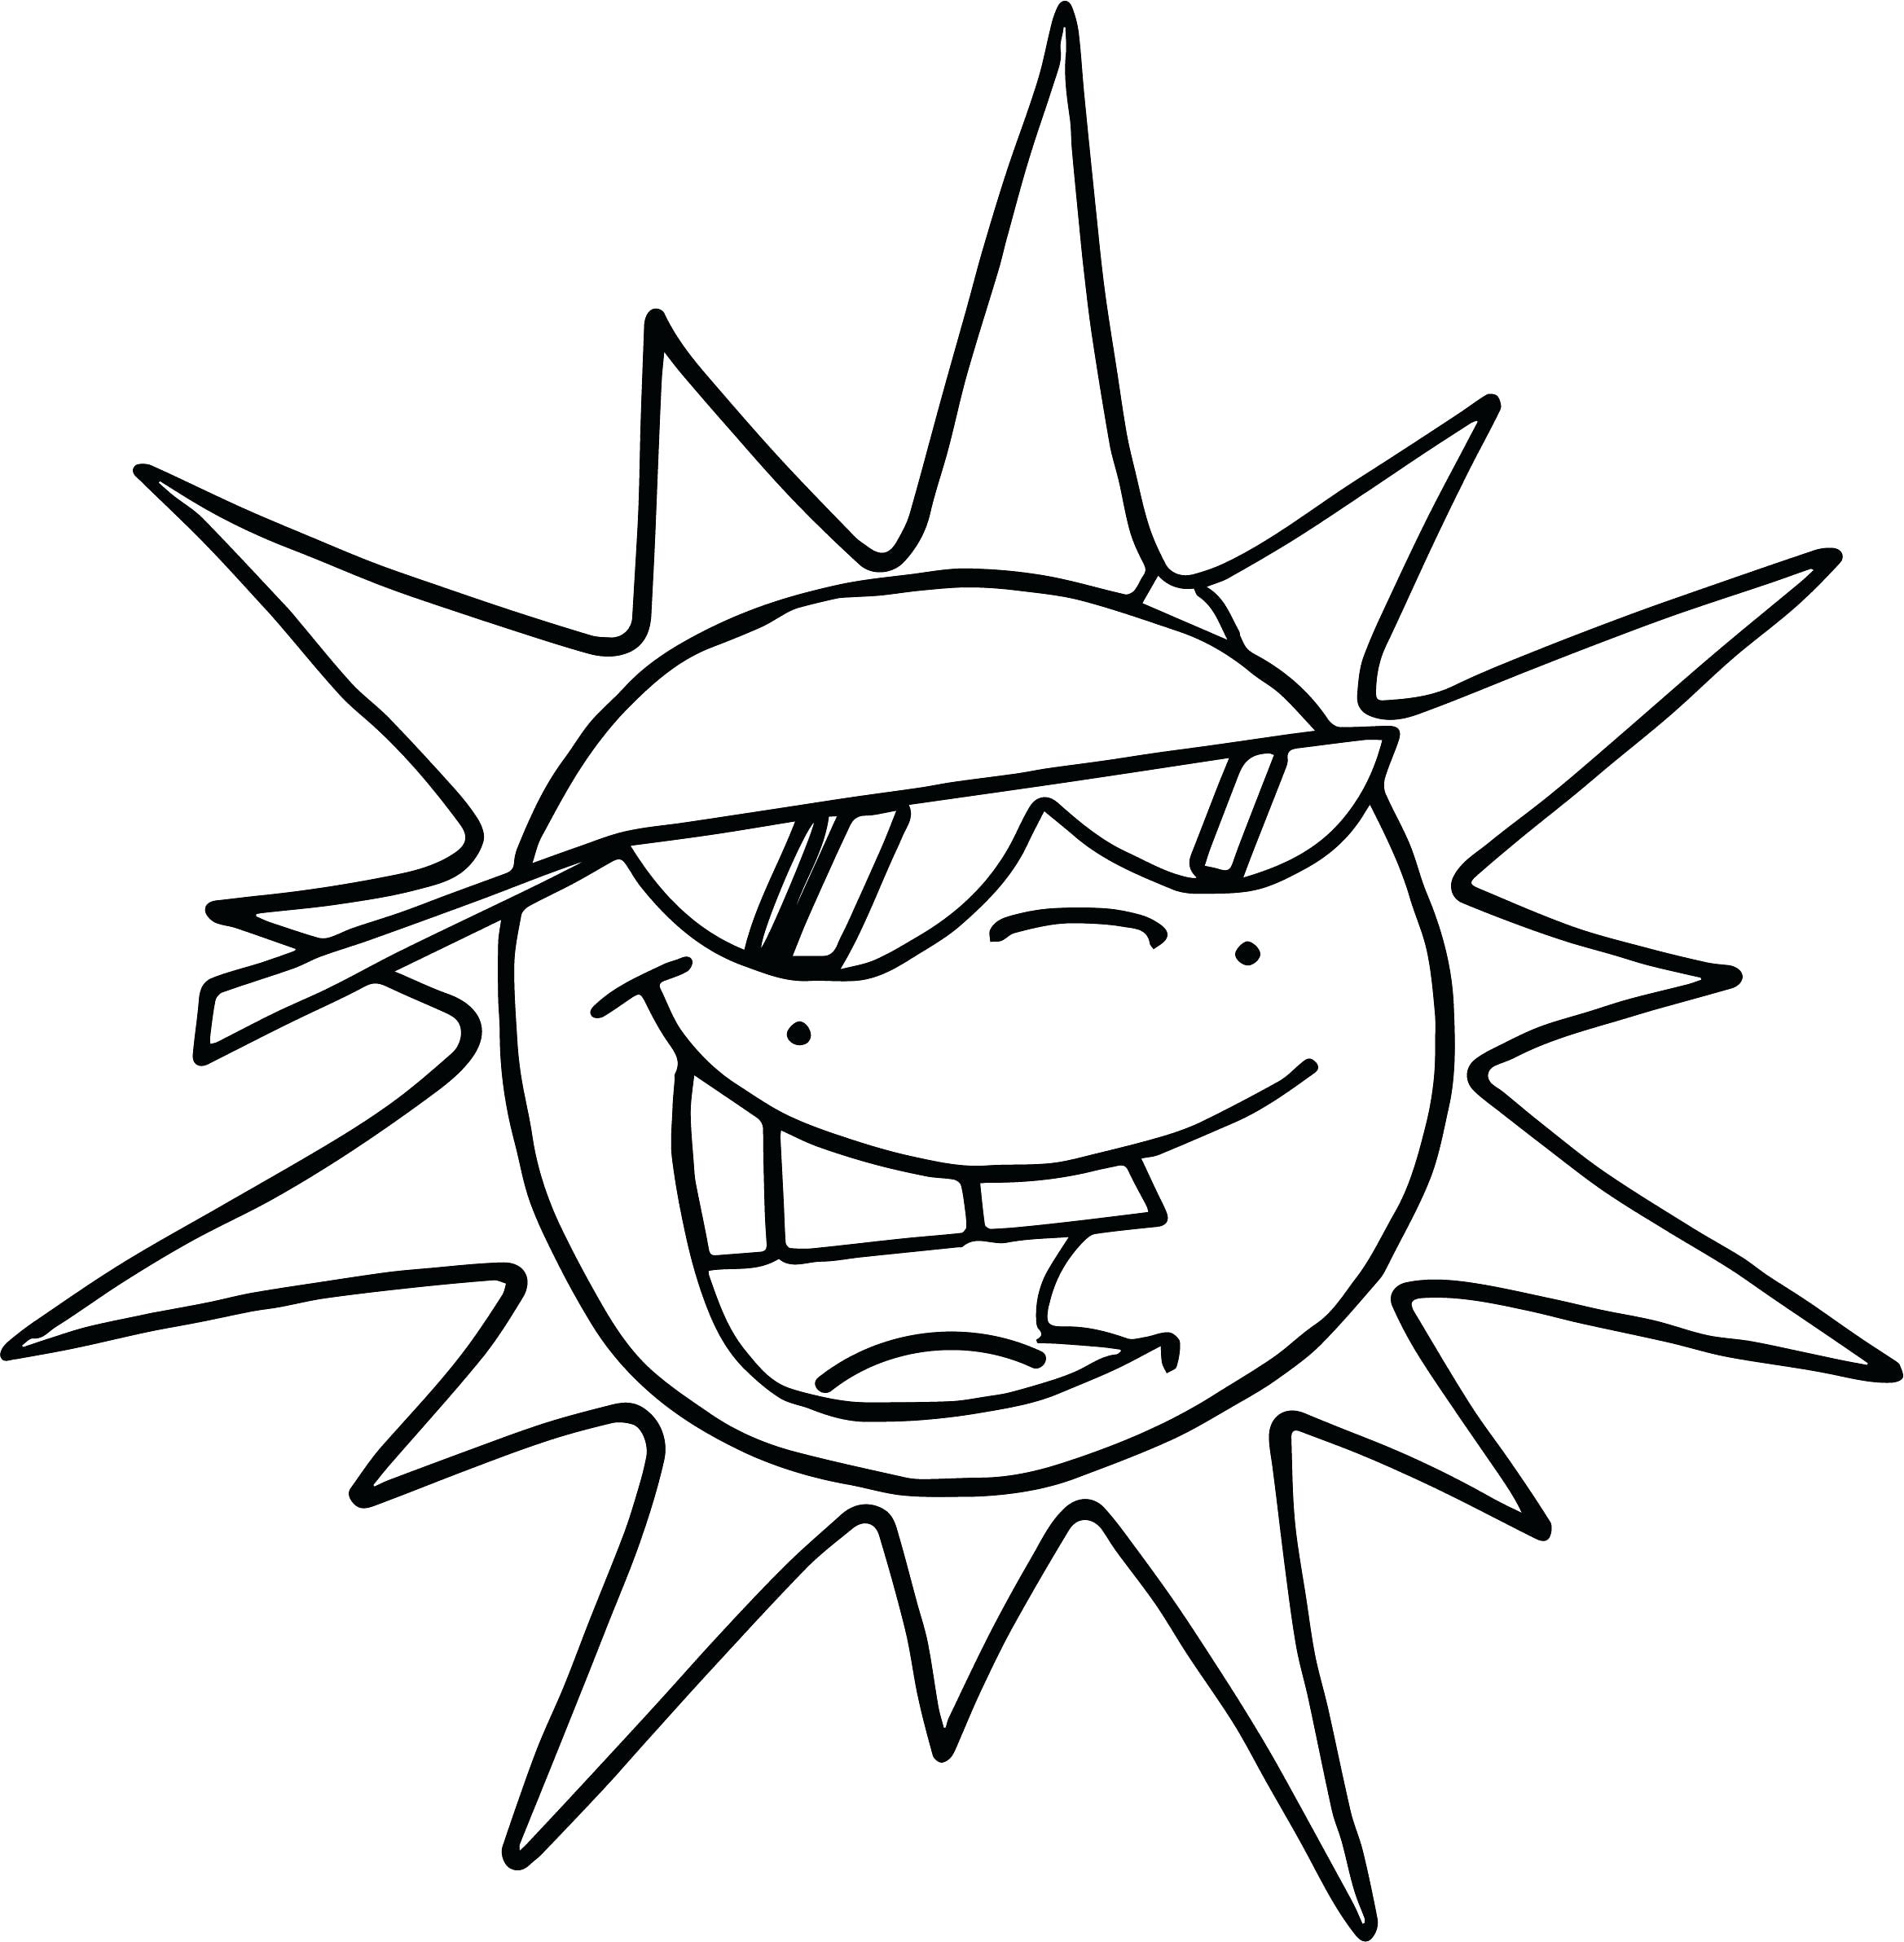 2337x2384 Coloring Sun Coloring Summer Funny Page Safety Pages. Sun Coloring